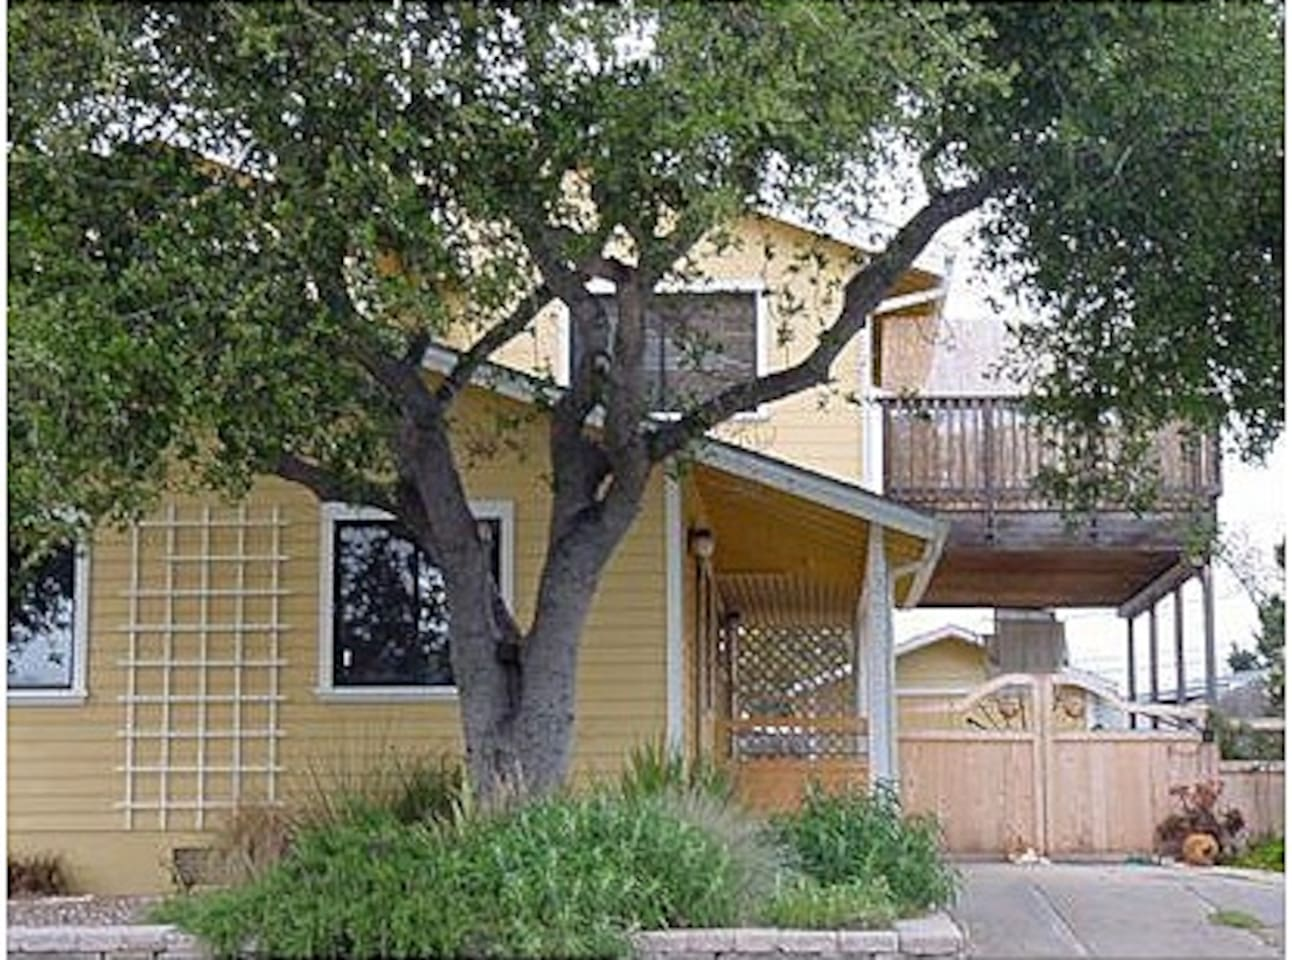 Welcome to your Monterey Bay vacation home in the sunny Seaside Hills